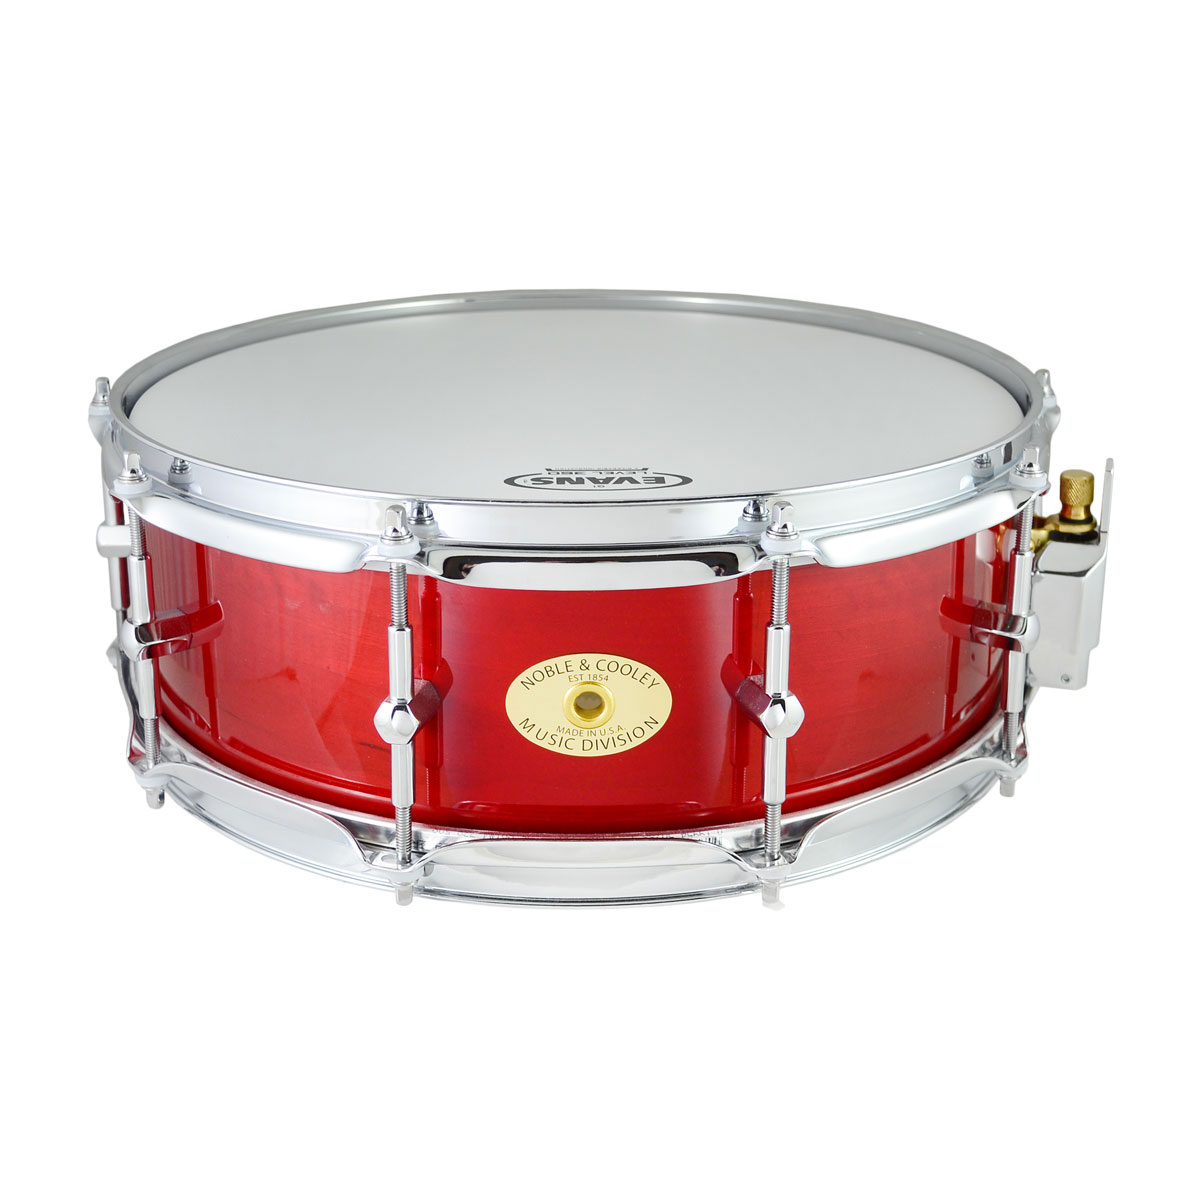 "Noble & Cooley 5"" x 14"" Classic Solid Shell Birch Snare Drum in Translucent Red Gloss"